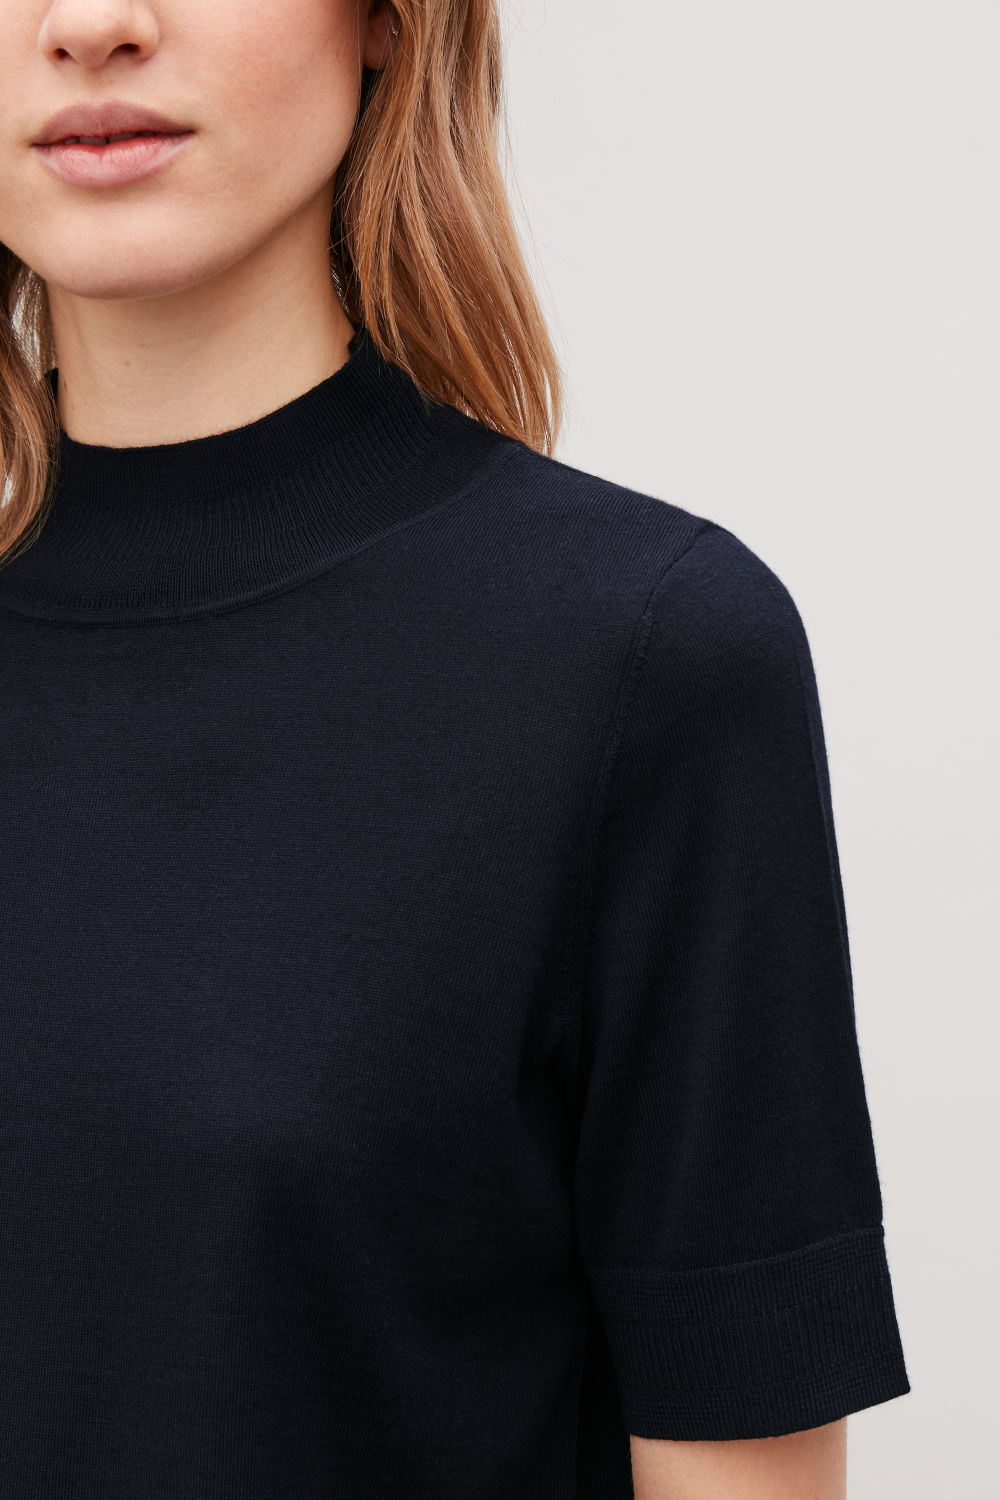 RIB-DETAILED MERINO-KNIT TOP